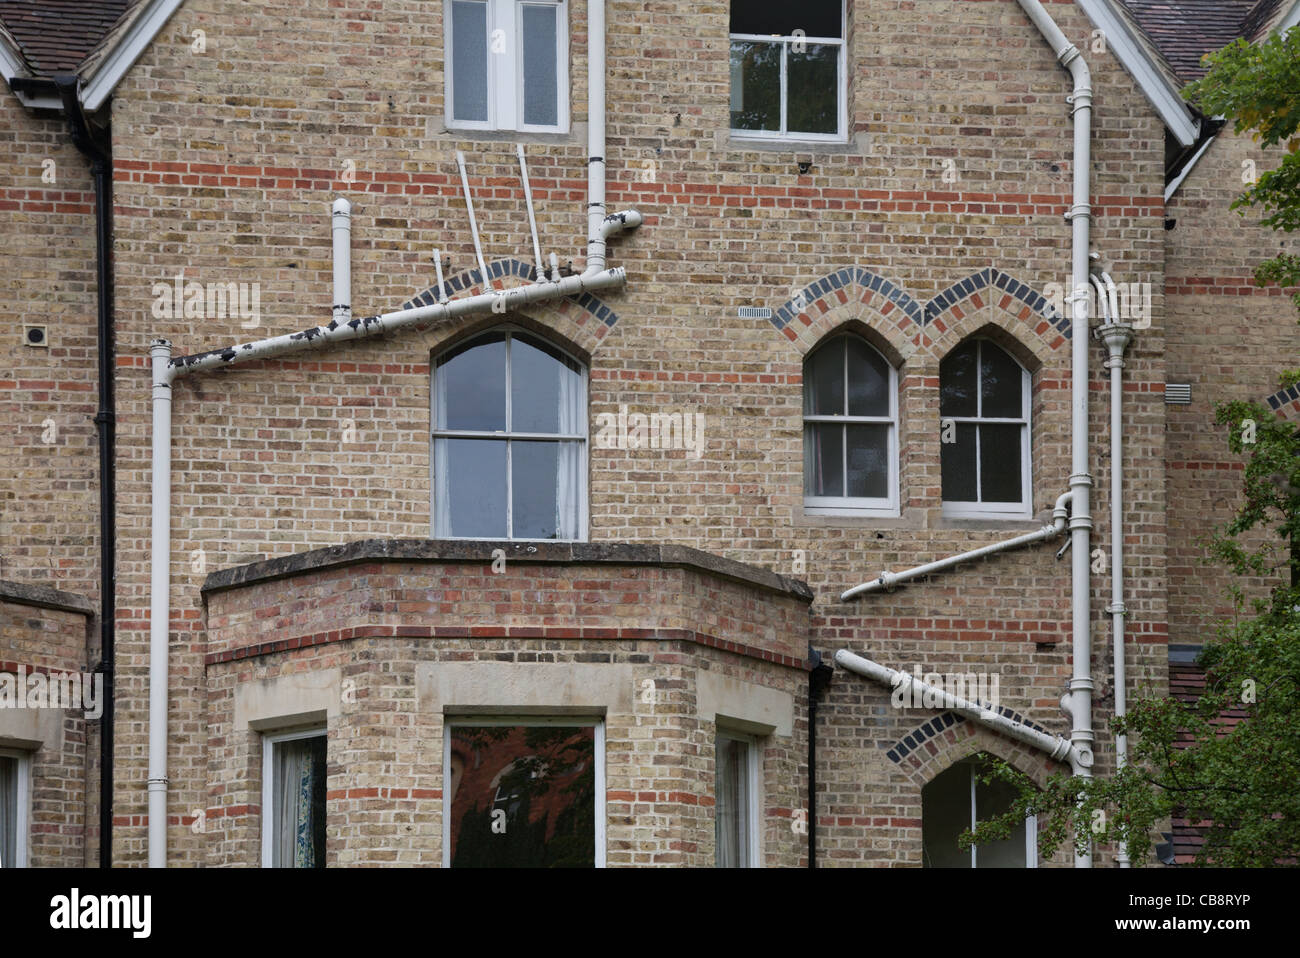 External plumbing in an old house, Oxford, UK - Stock Image